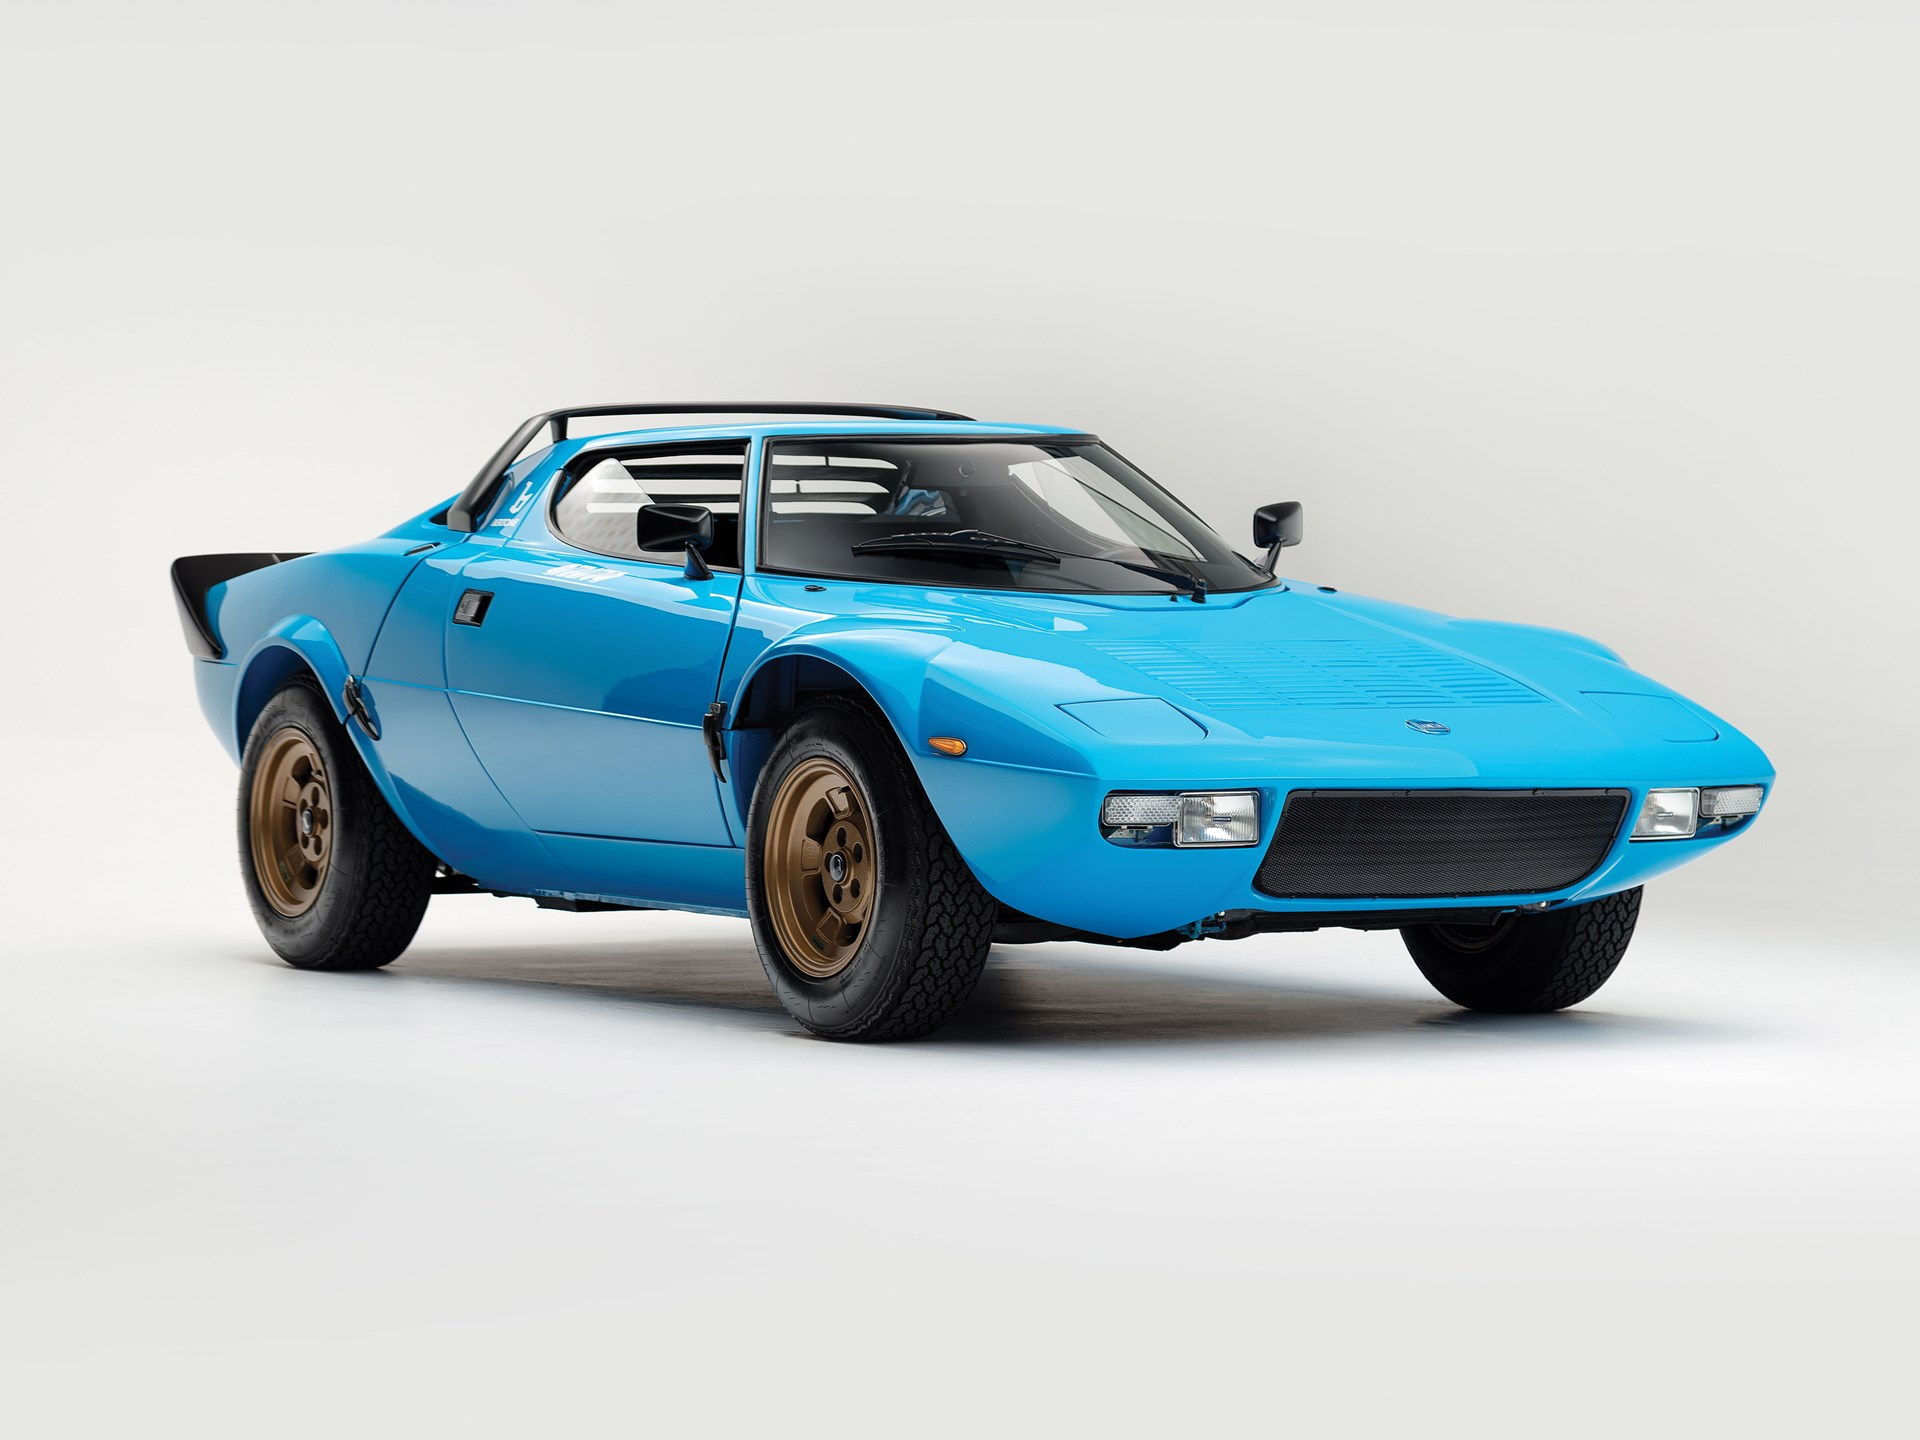 Image result for RM amelia 2020 lancia stratos